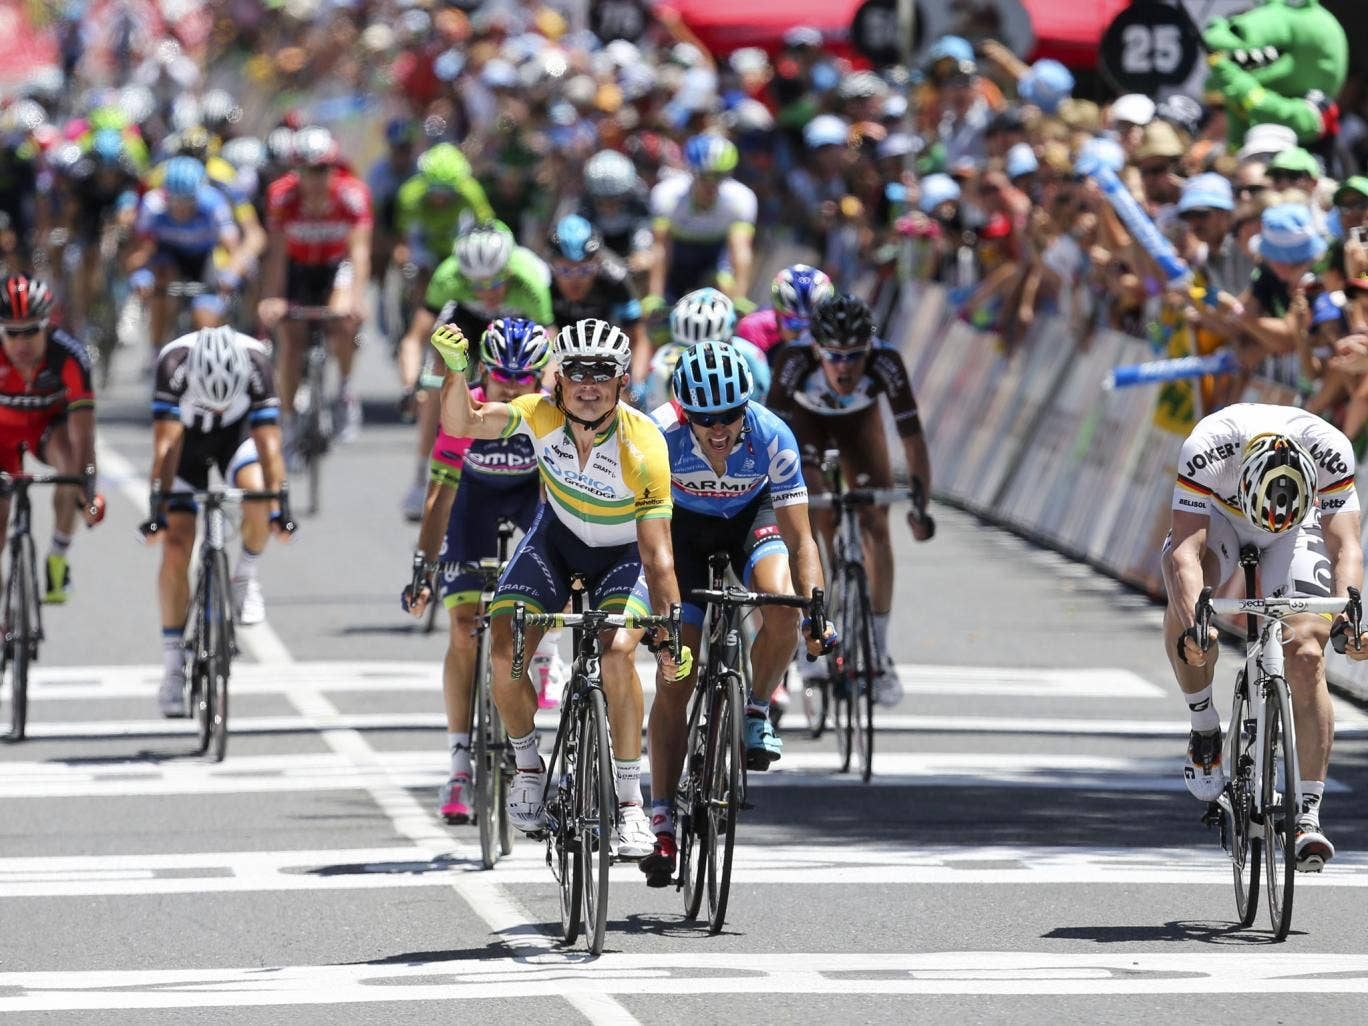 Simon Gerrans of Australia wins the first stage of the Tour Down Under